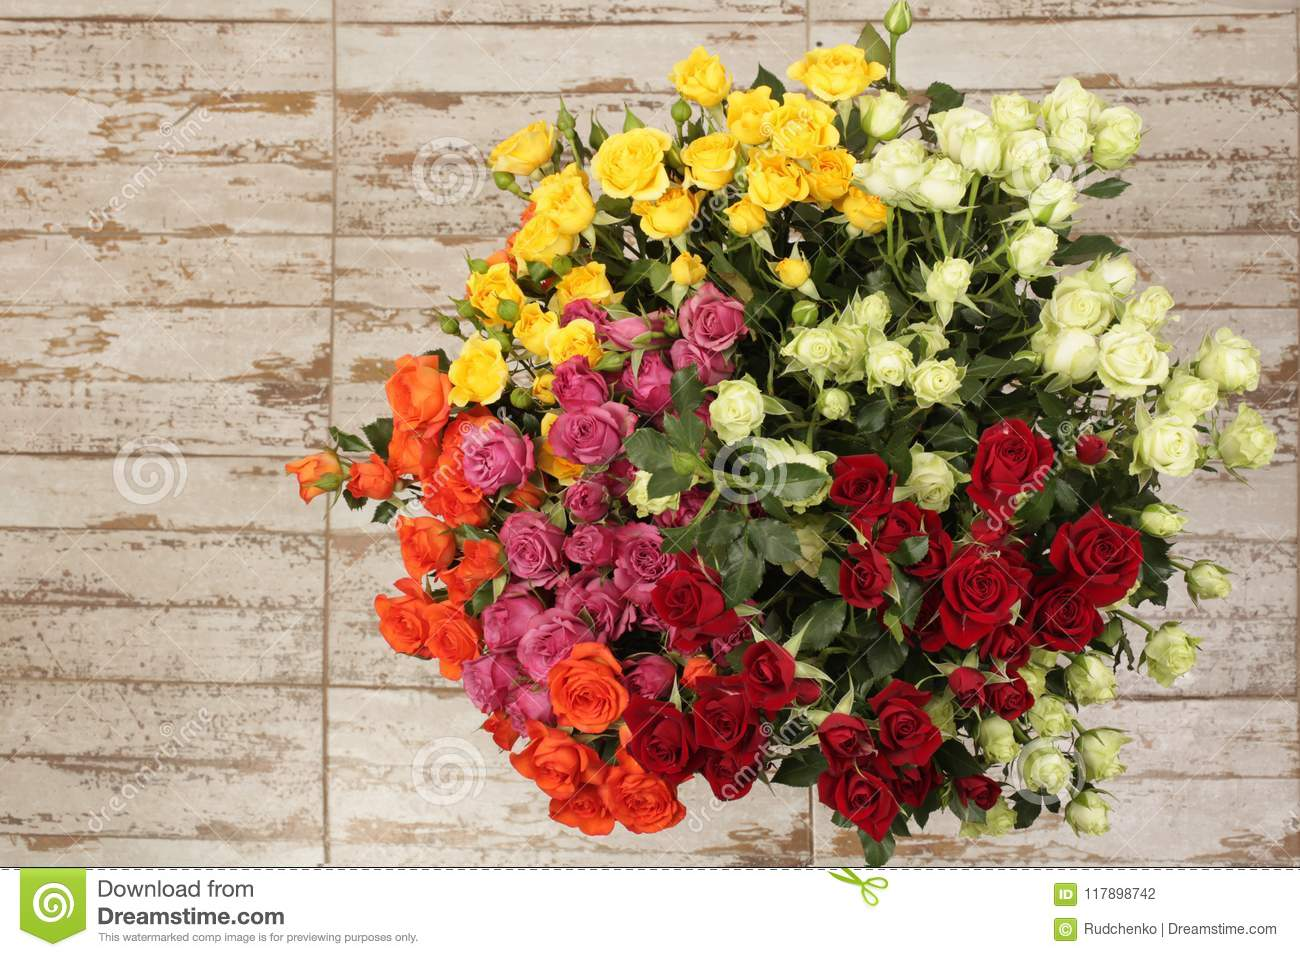 Flower bouquet background yellow and red roses stock photo image download flower bouquet background yellow and red roses stock photo image of botanical izmirmasajfo